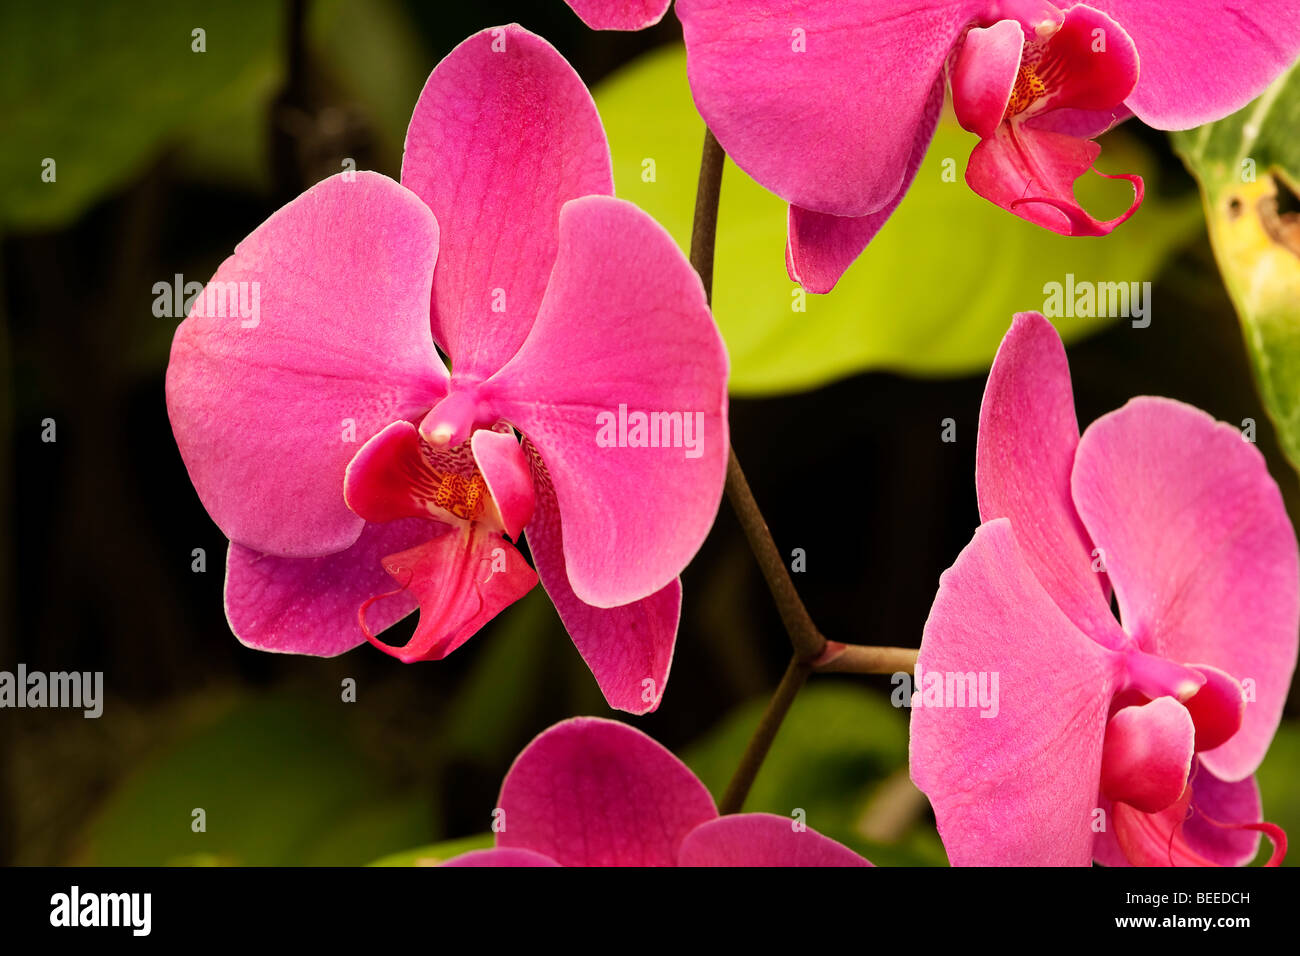 Pink orchid. Order Asparagales, family Orchidaceae, genus Phalaenopsis, species hybrid. South Africa. - Stock Image